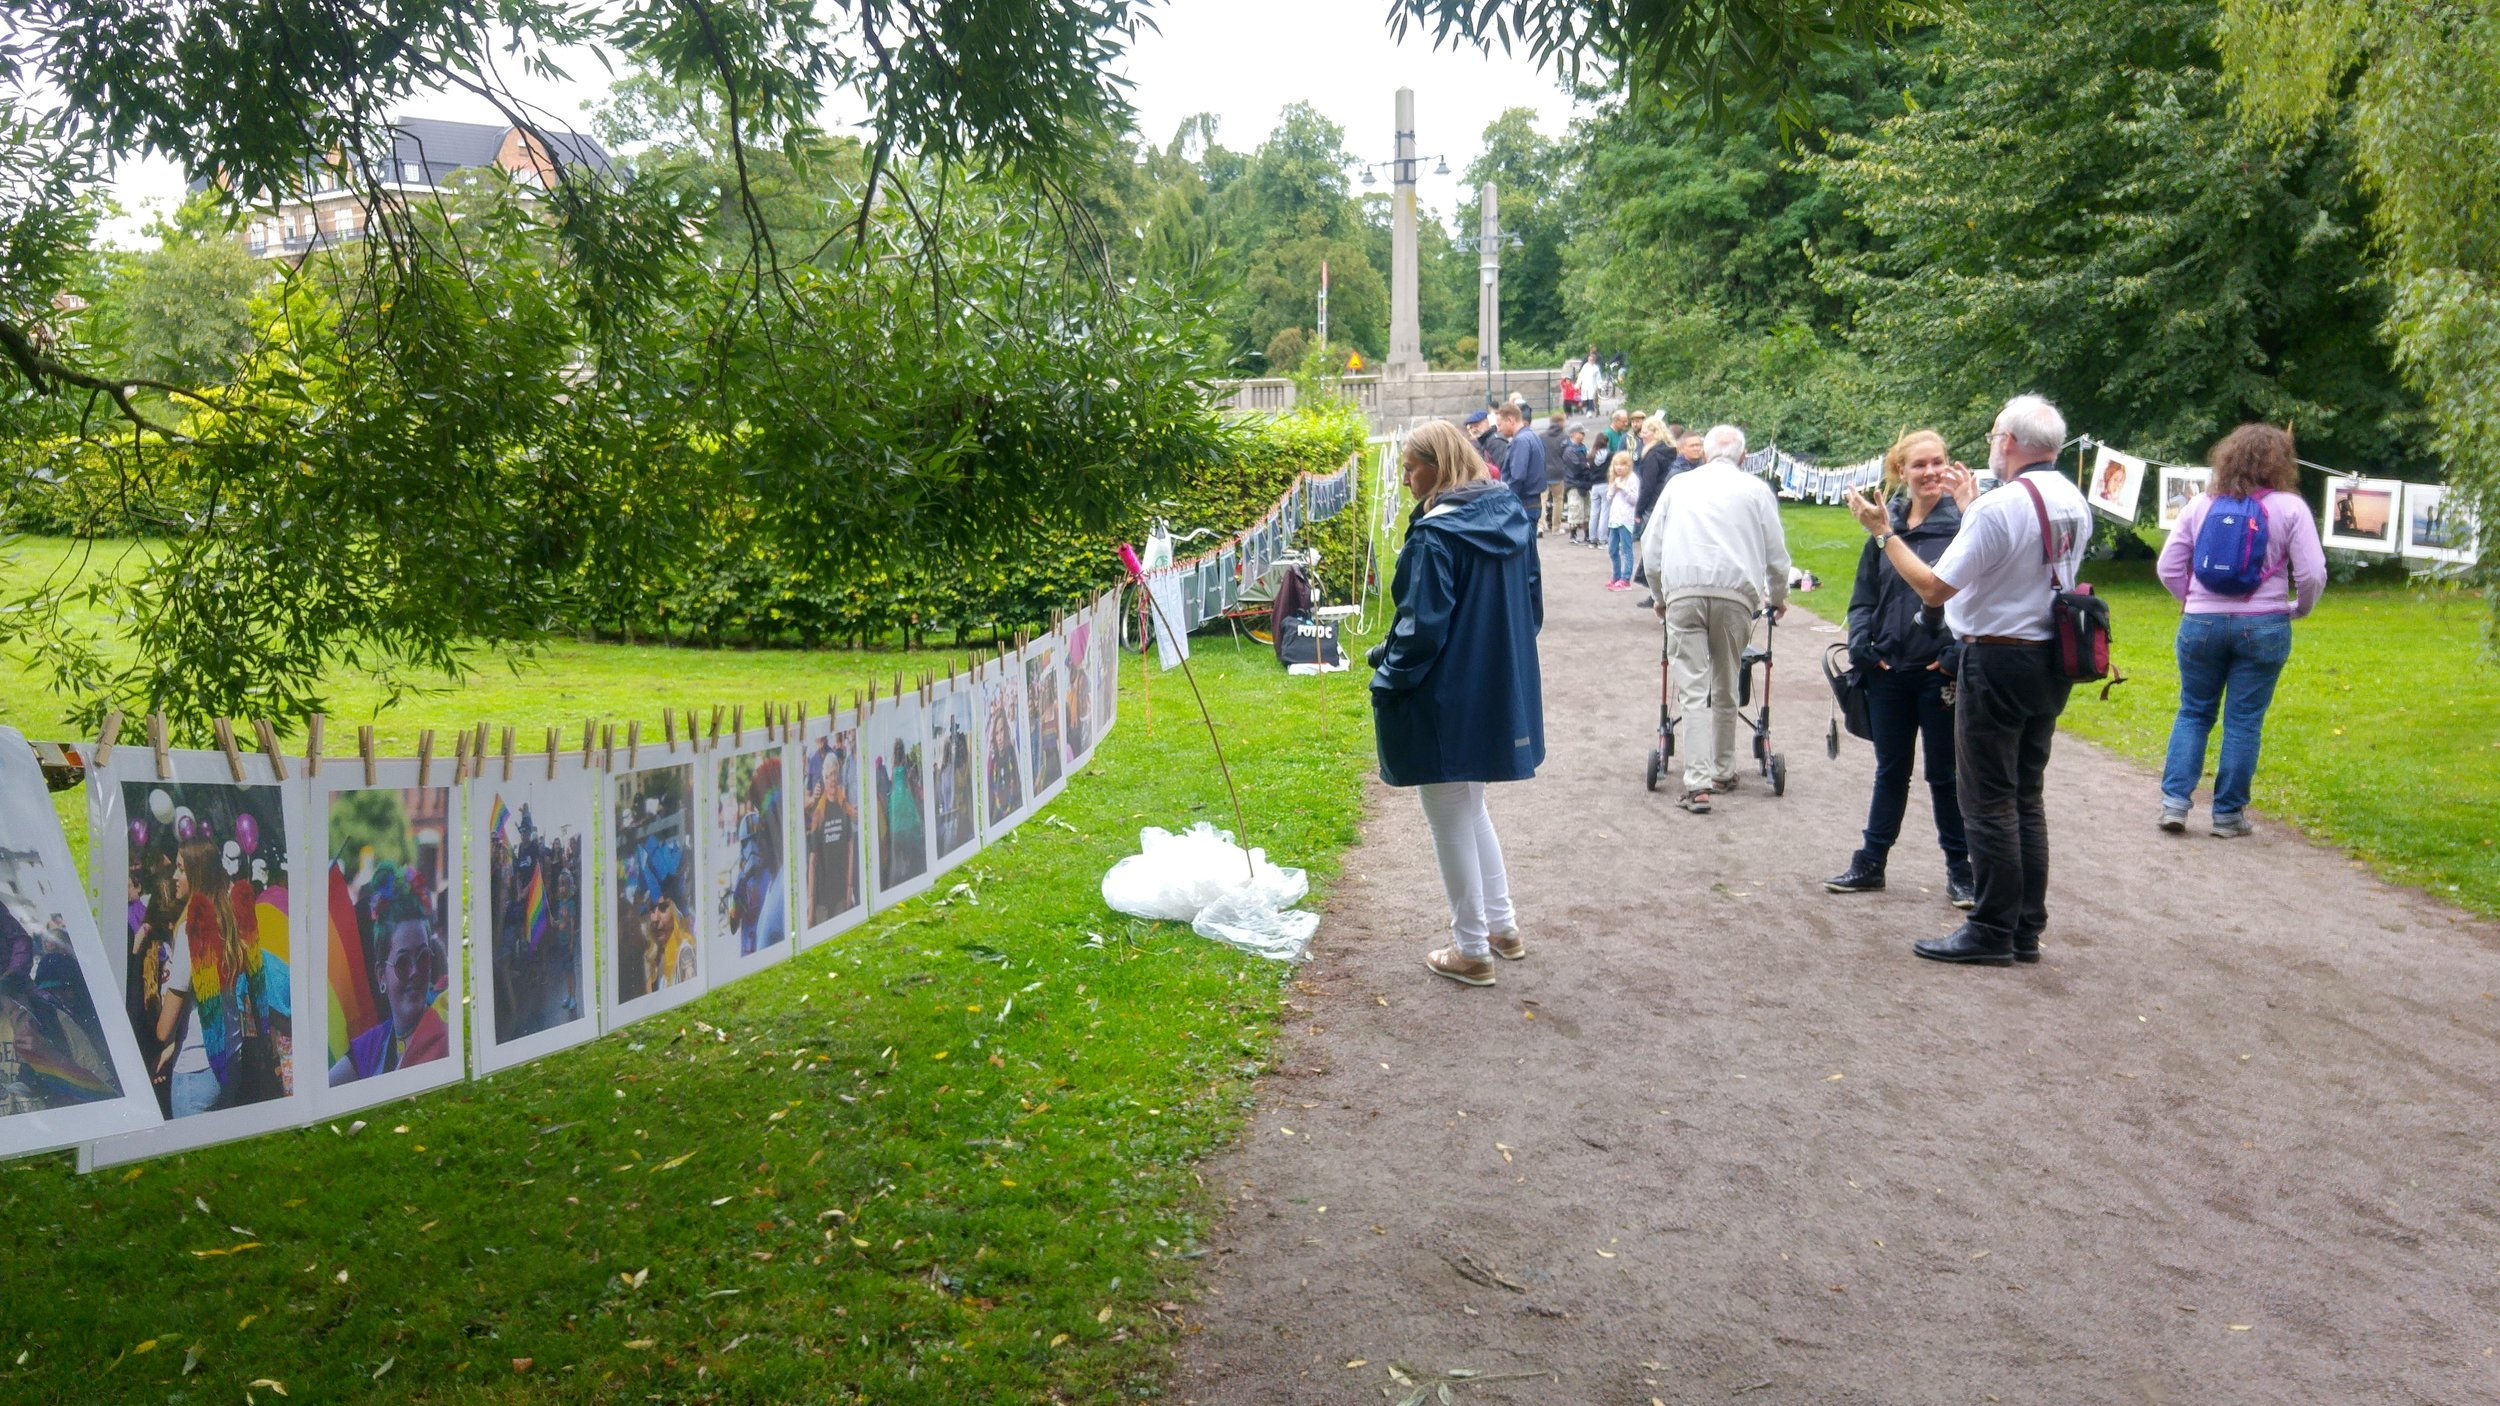 Linan 2017 (The Line) at the City Library Park in Malmö